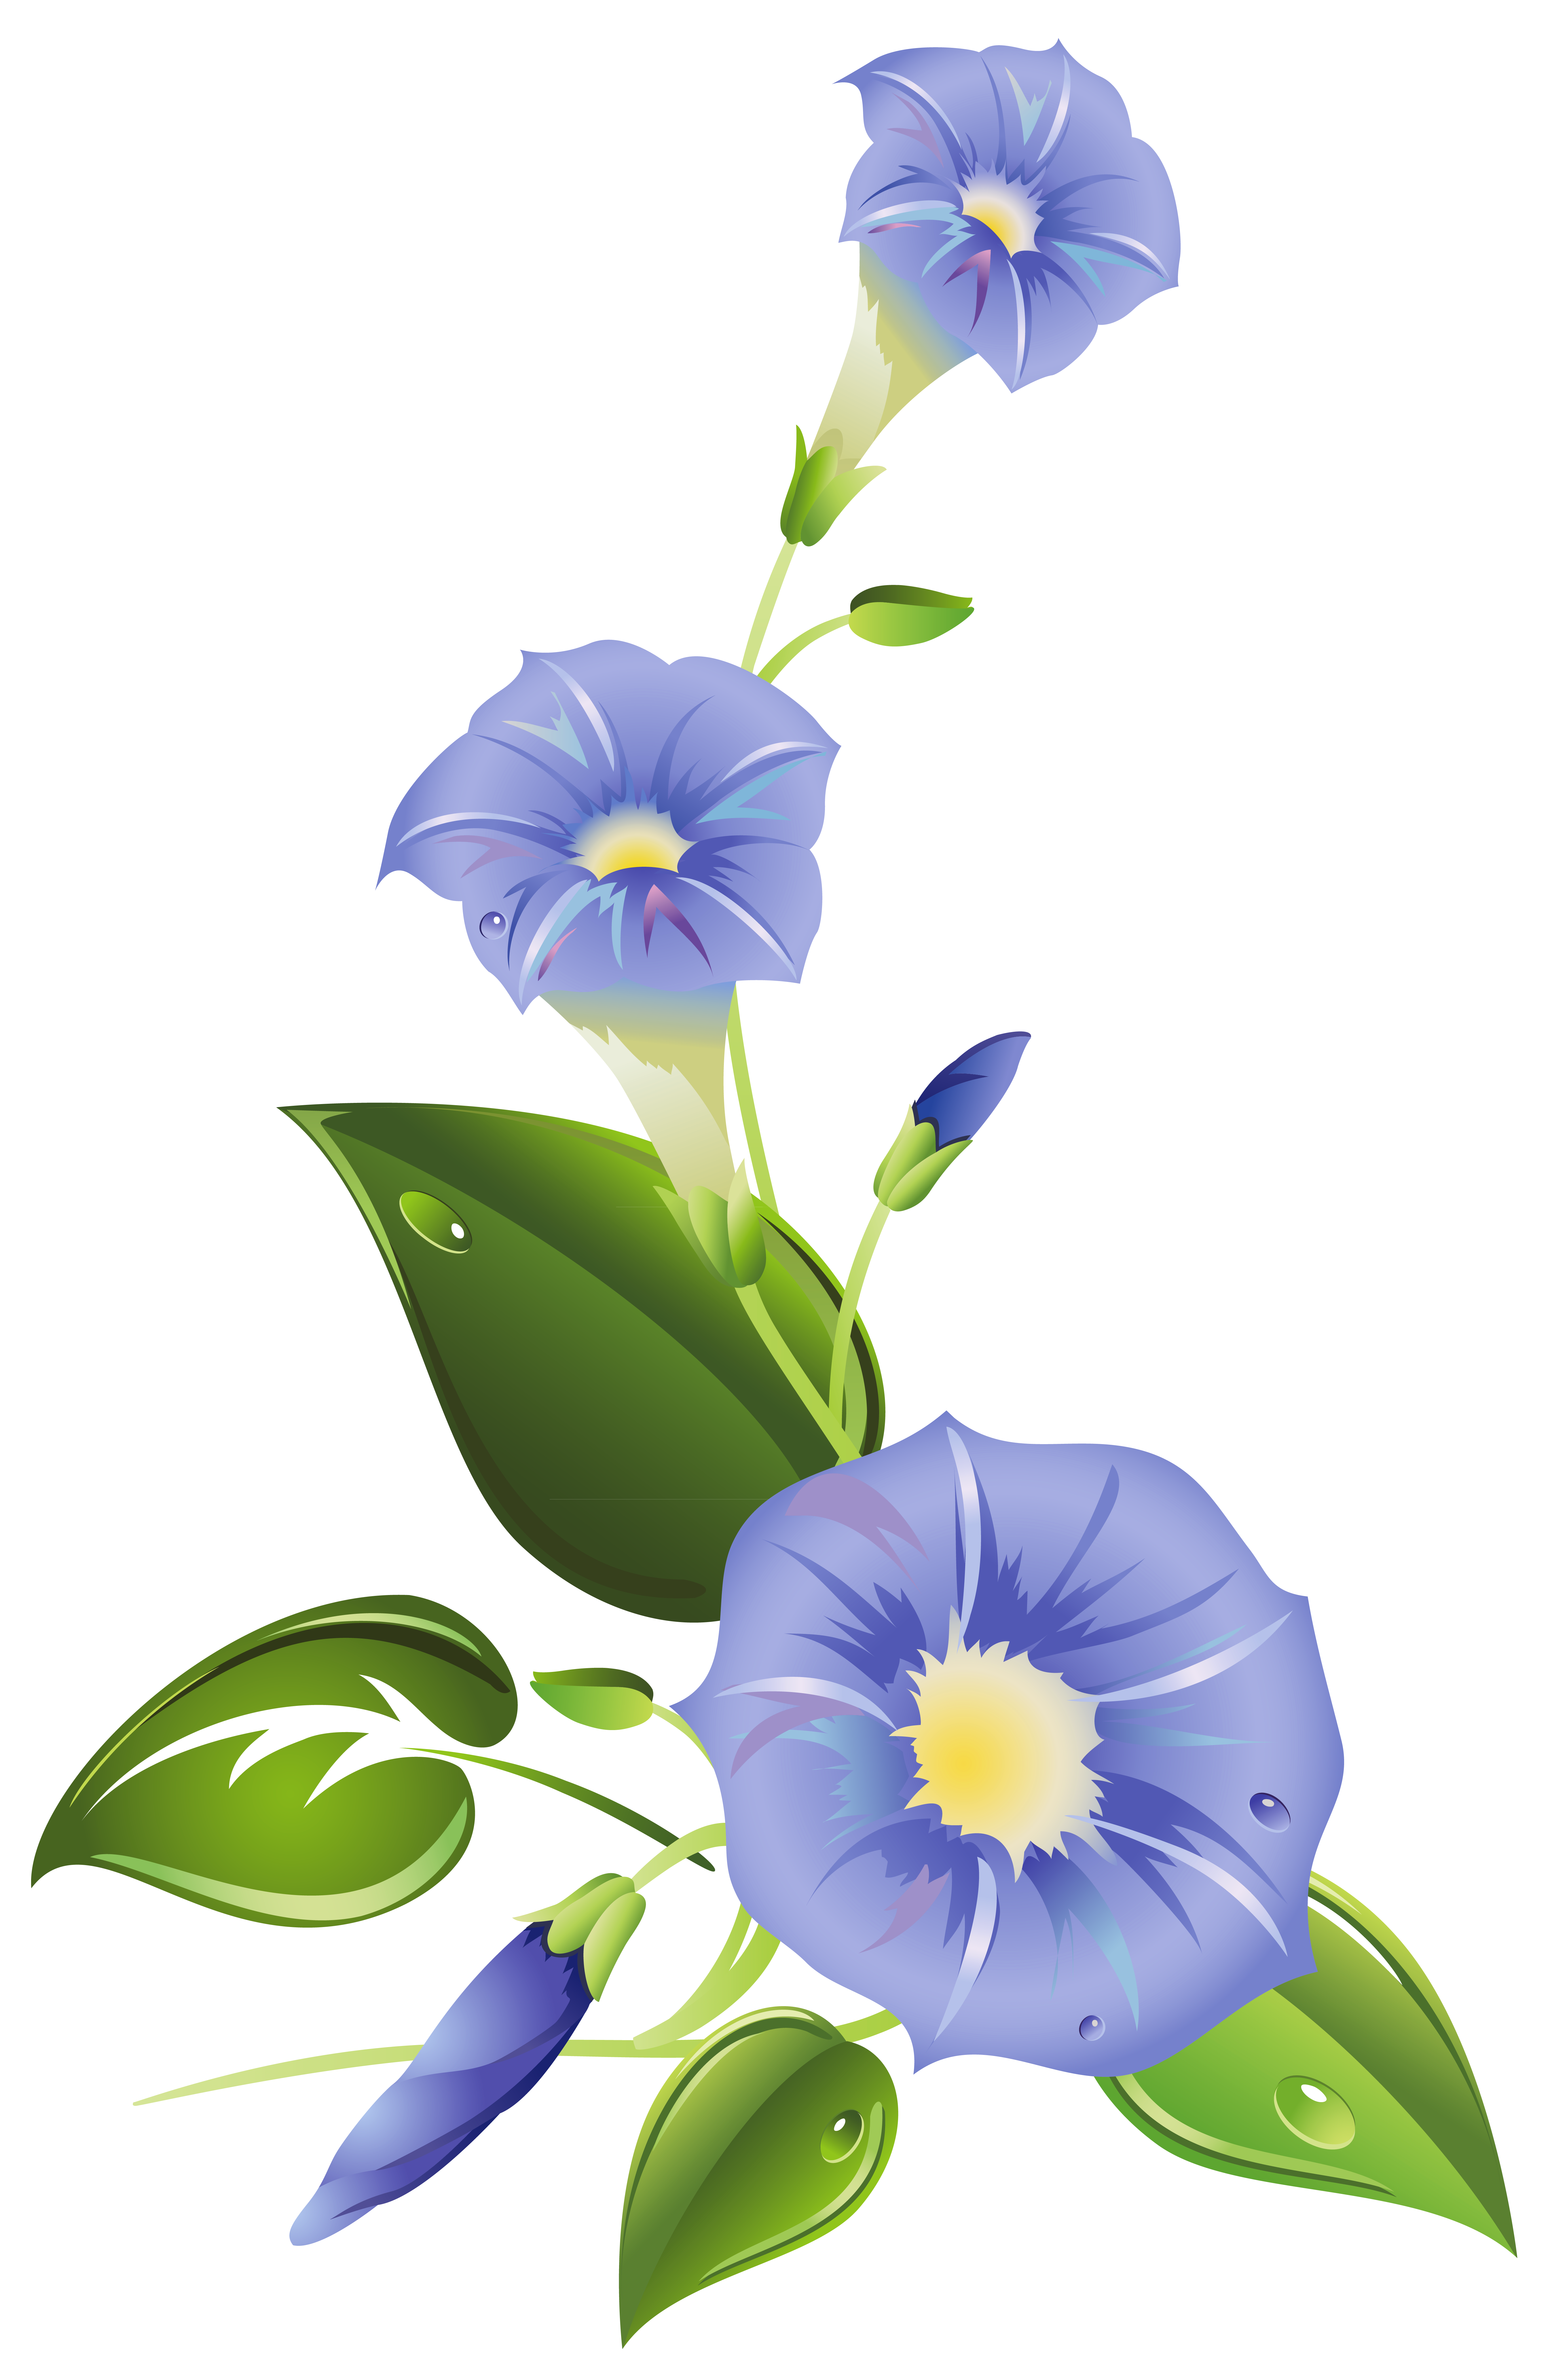 Morning glory flower clipart png freeuse download Ipomoea purpurea Morning glory Ipomoea indica Ipomoea carnea Clip ... png freeuse download